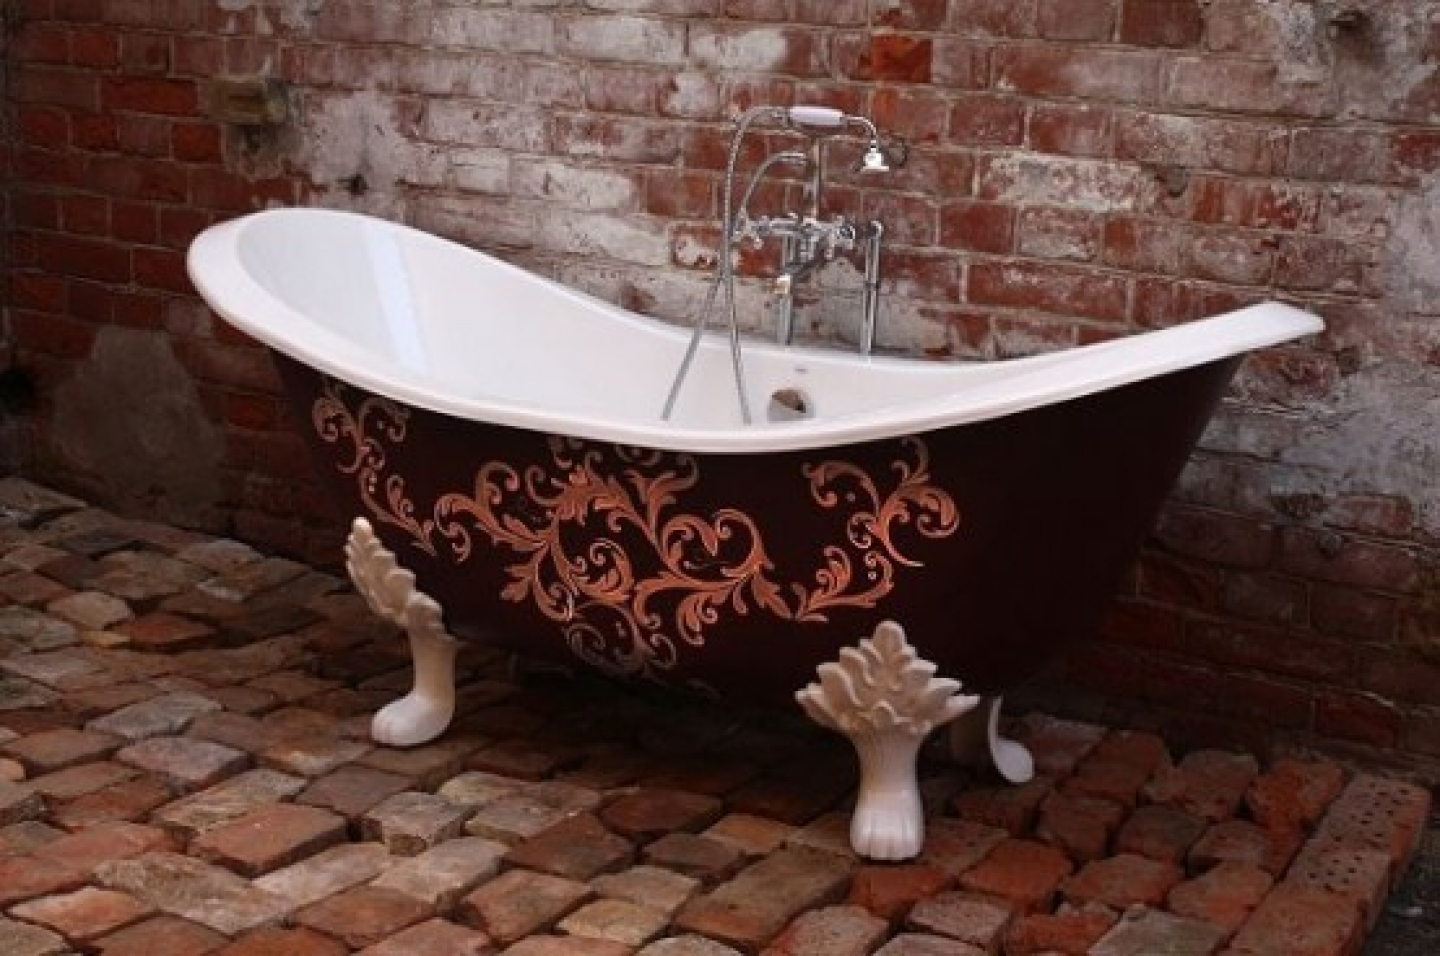 31858-the-bathroom-it-s-a-fashion-statement-a-focal-point-in-your-home_1440x900